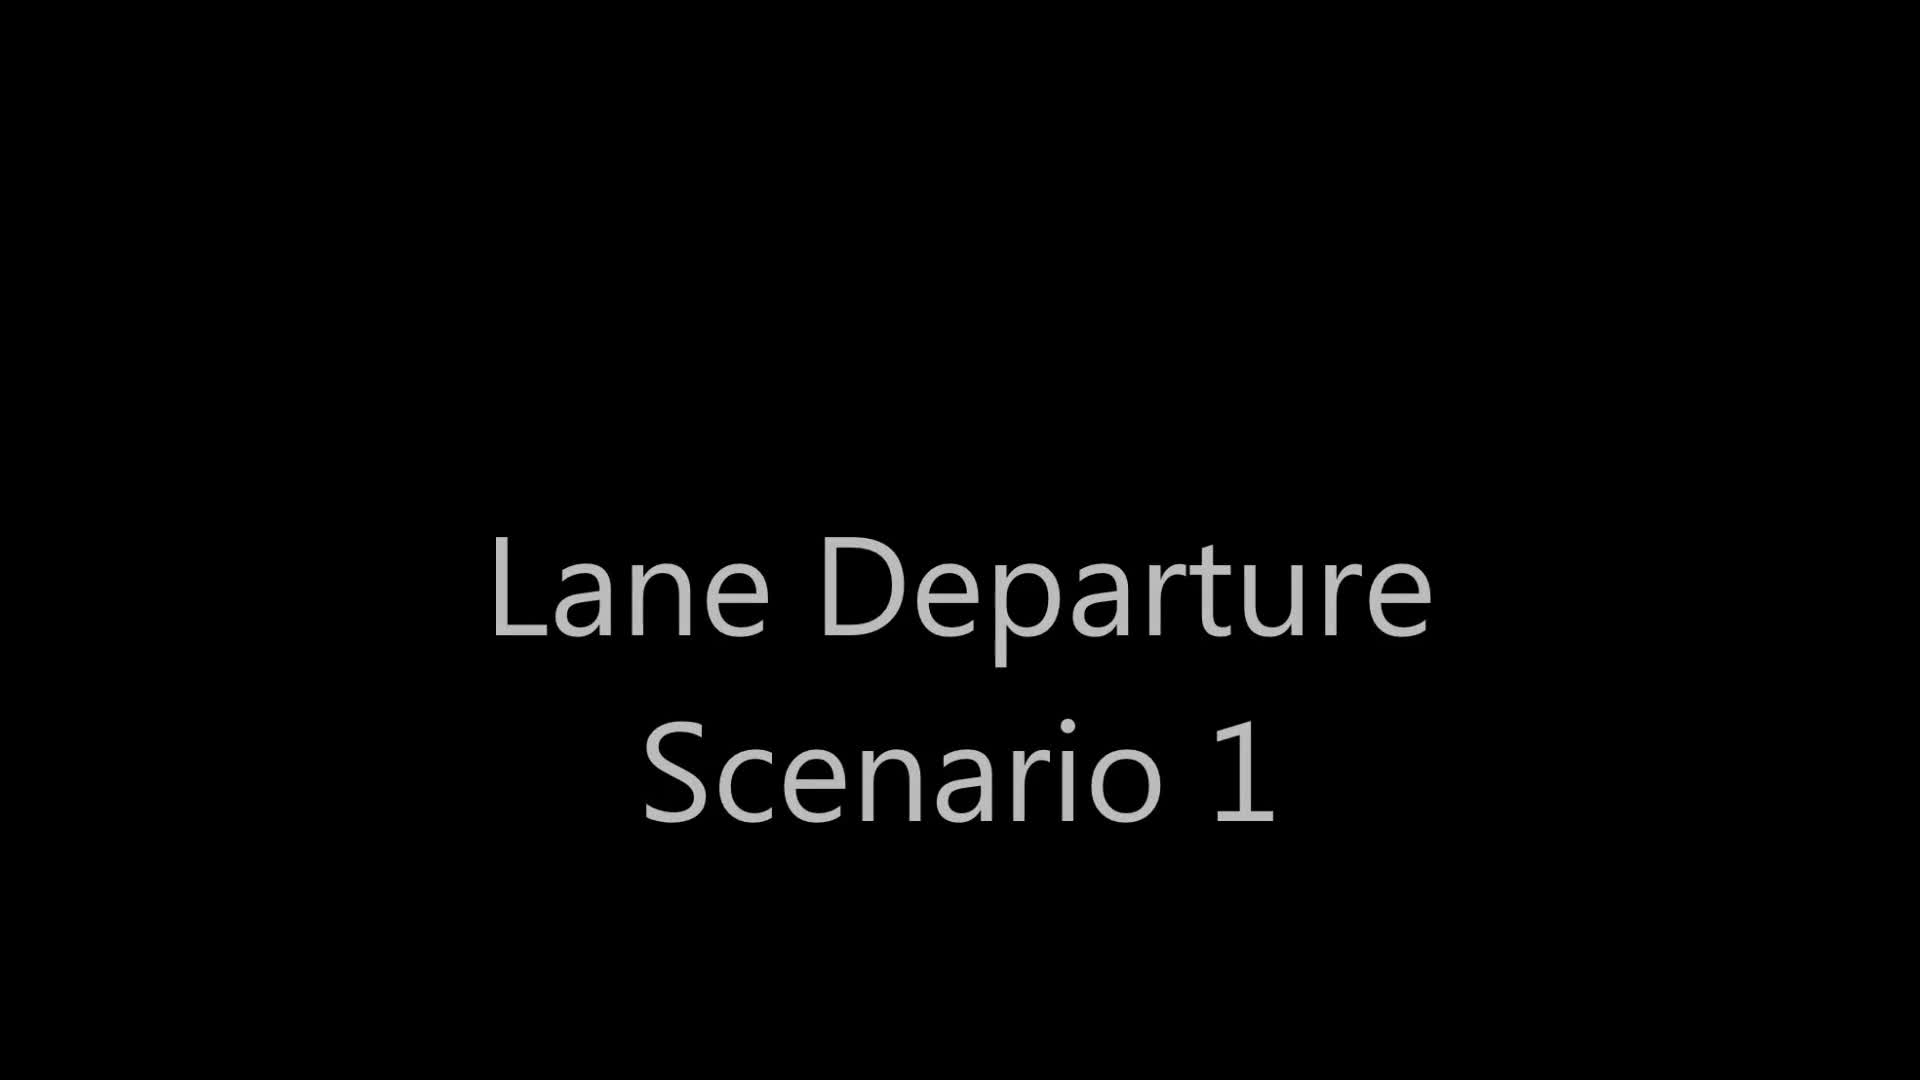 SmartDrive and strategic partner WABCO have announced the industry's first and only lane departure warning system (LDWS) capable of video analytics and combining previous functionalities of two cameras into one, offering fleets 'best of breed' LDWS from OnLane and video analytics from SmartDrive.